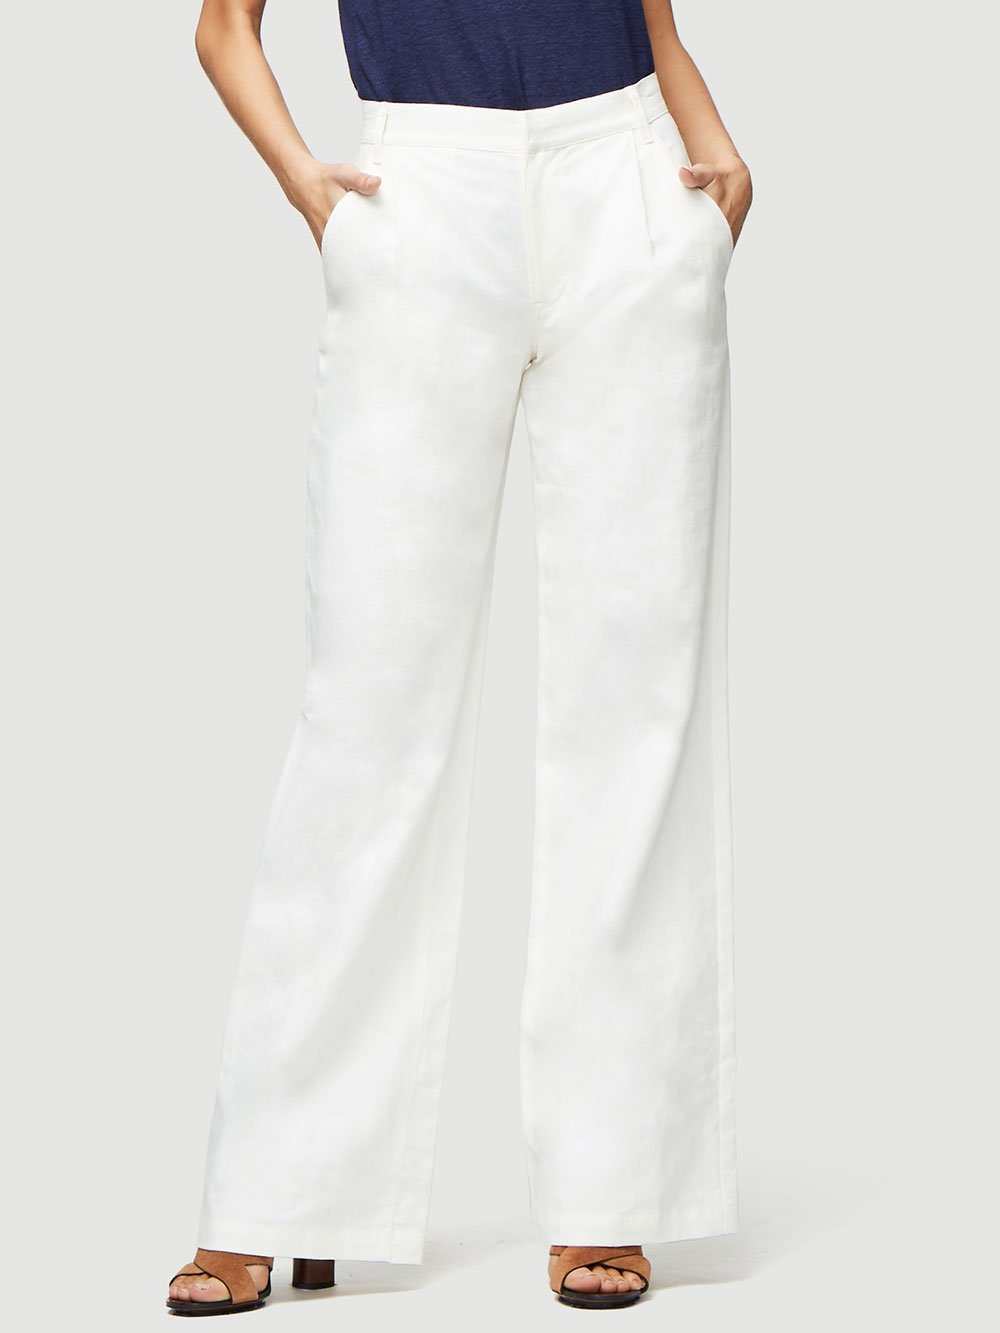 Clean Service Trouser from FRAME